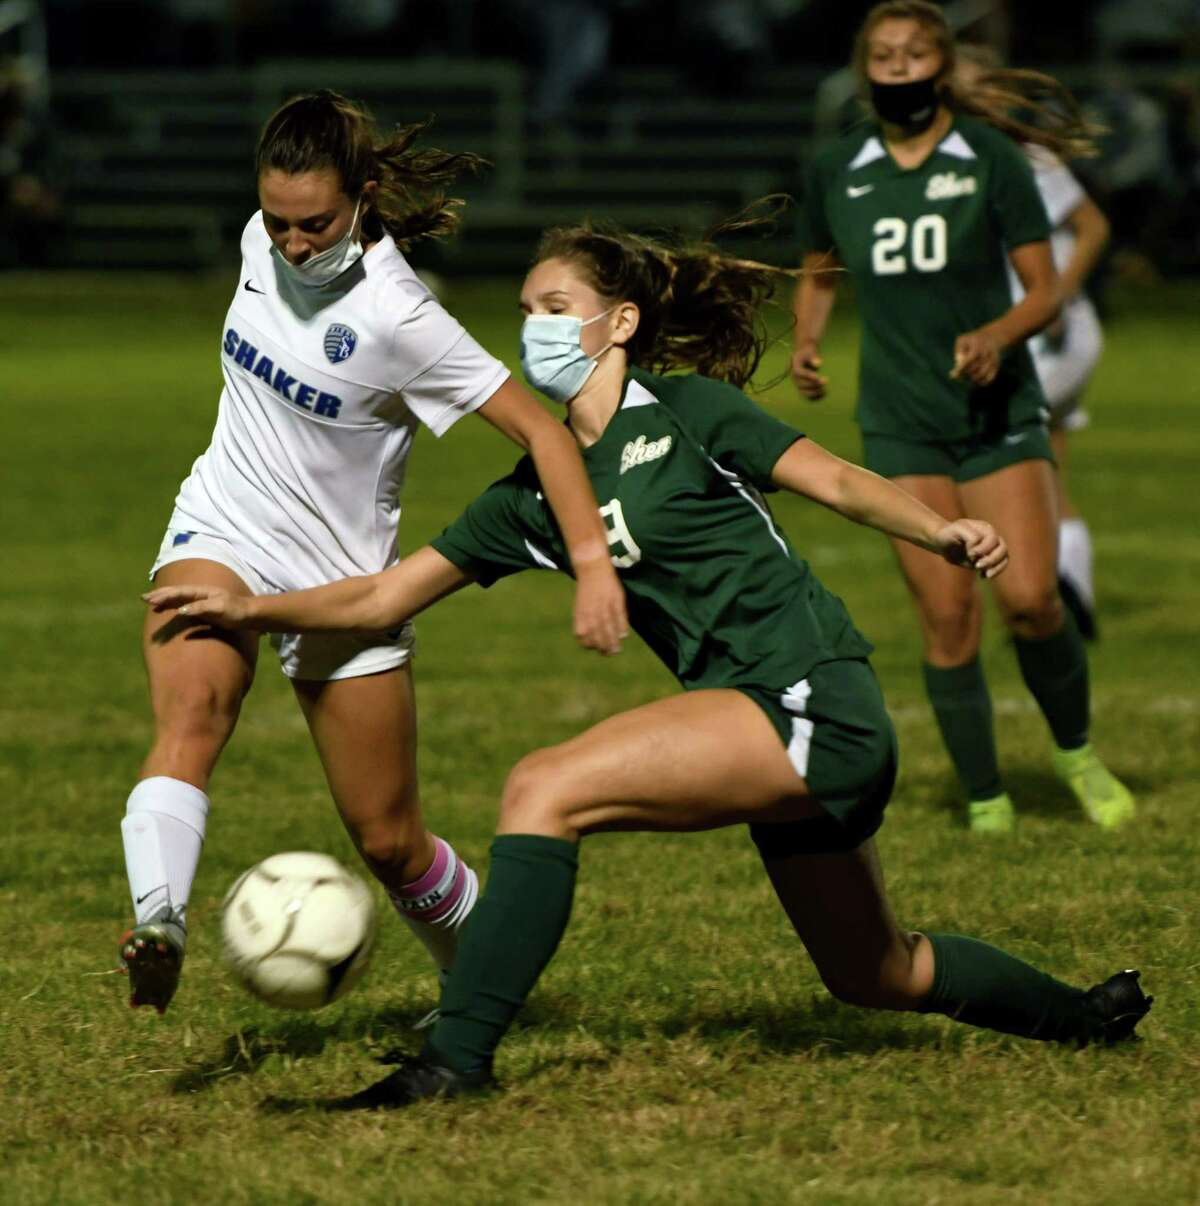 Shen's Mirabel Brunell attempts to block a pass by Shaker's KayLee Alix during a game Tuesday, Oct. 6, 2020, in Clifton Park(Jenn March, Special to the Times Union)